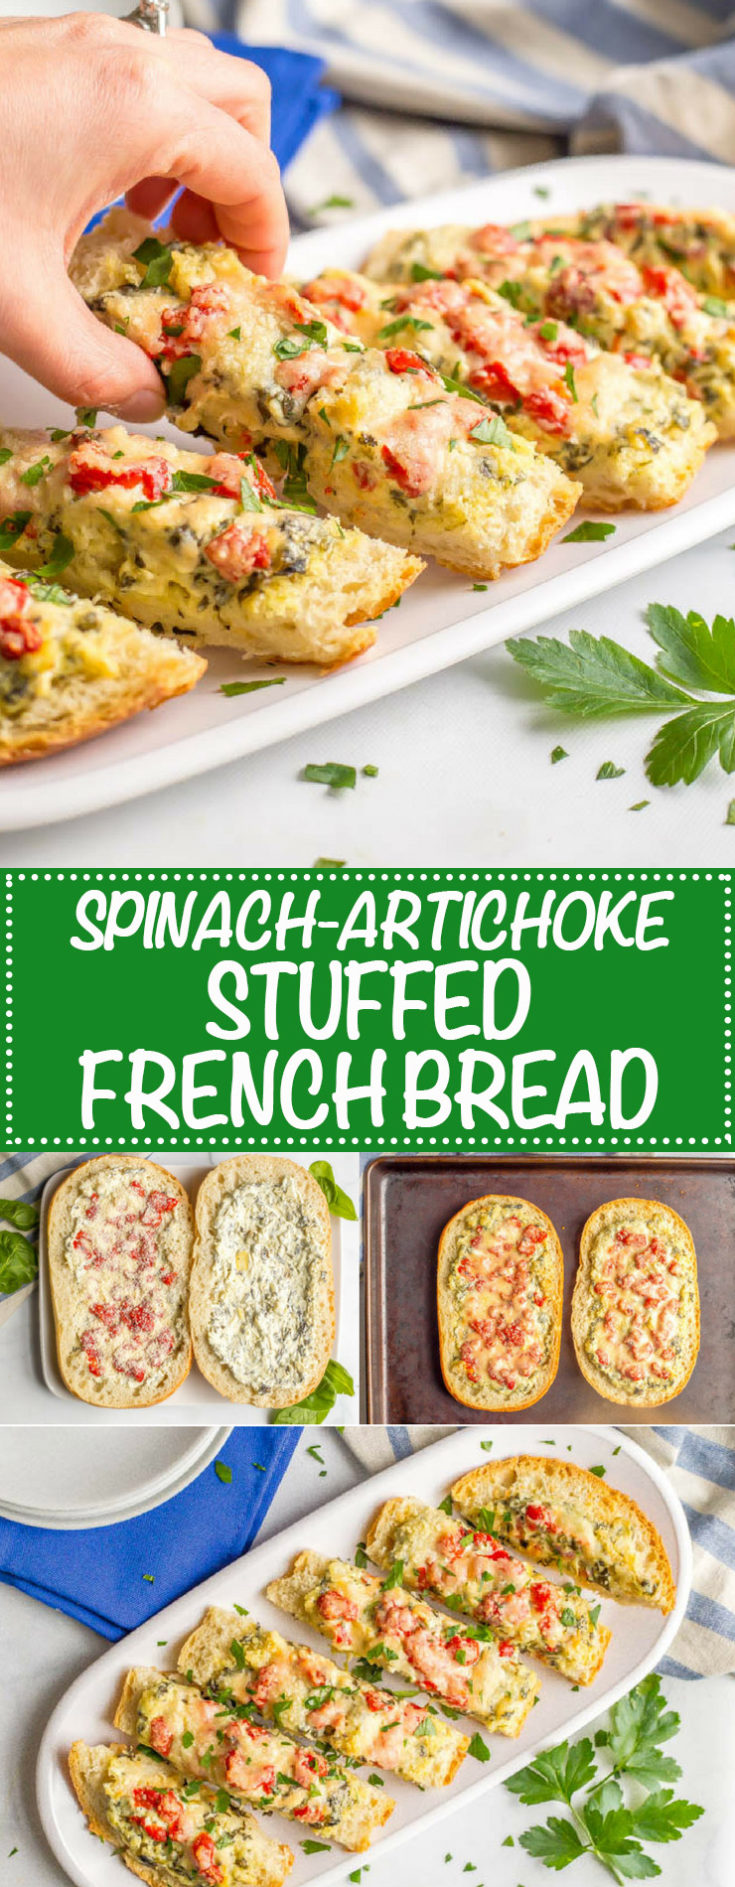 Spinach artichoke stuffed French bread is a super easy recipe that's always a crowd pleaser! Spinach artichoke dip is layered over French bread, topped with cheese and then baked until bubbly to make an irresistible appetizer for game day or any party!